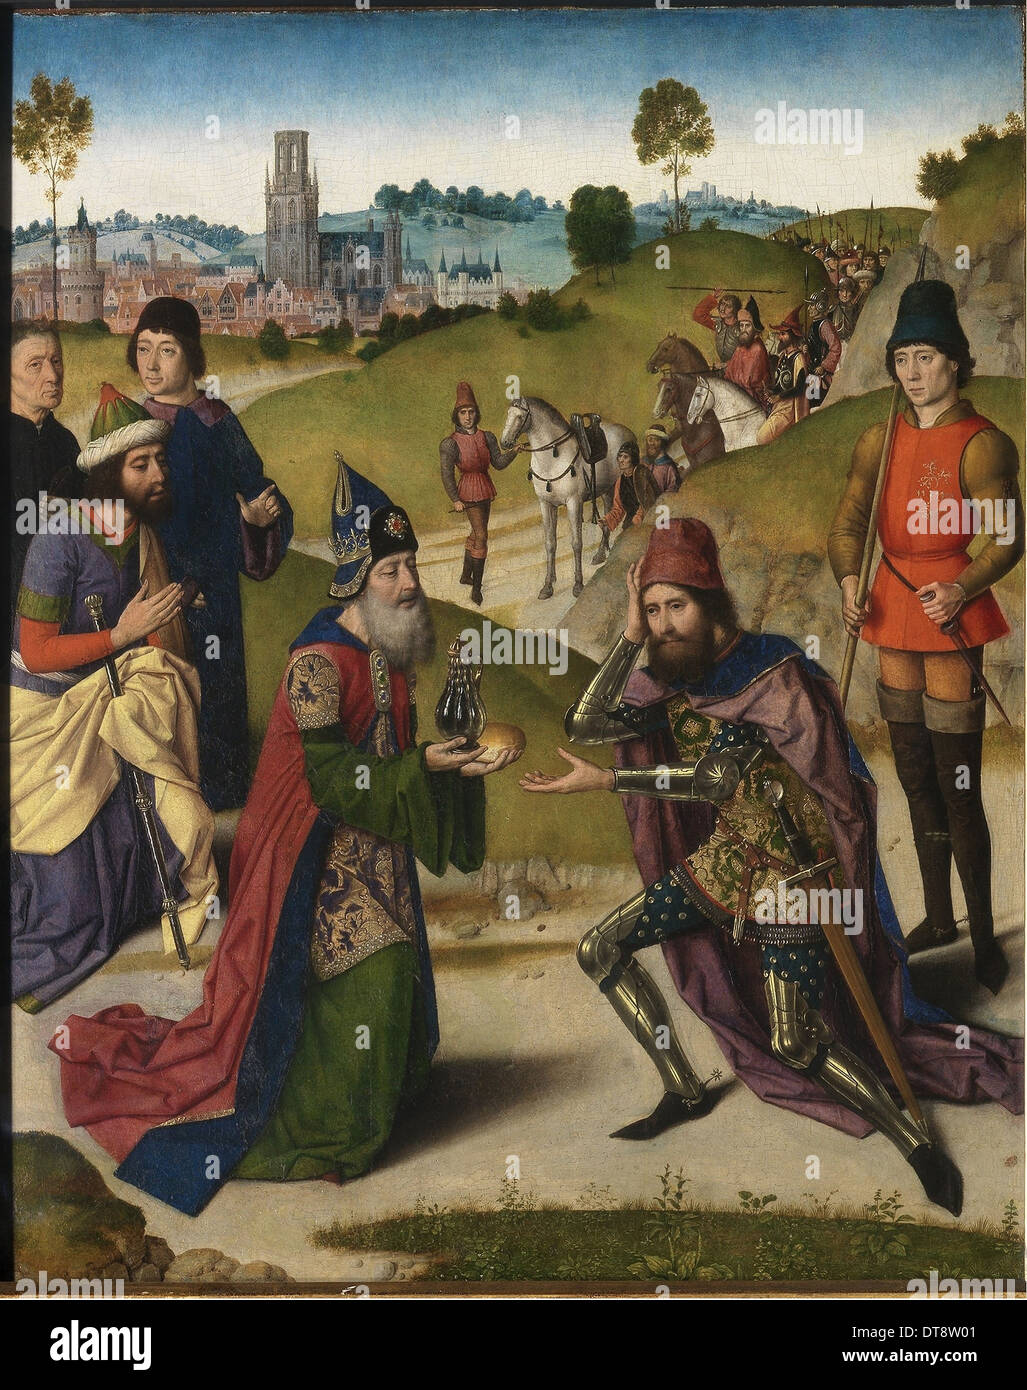 The Last Supper altarpiece: Meeting of Abraham and Melchizedek (left wing), 1464-1468. Artist: Bouts, Dirk (1410/20-1475) - Stock Image